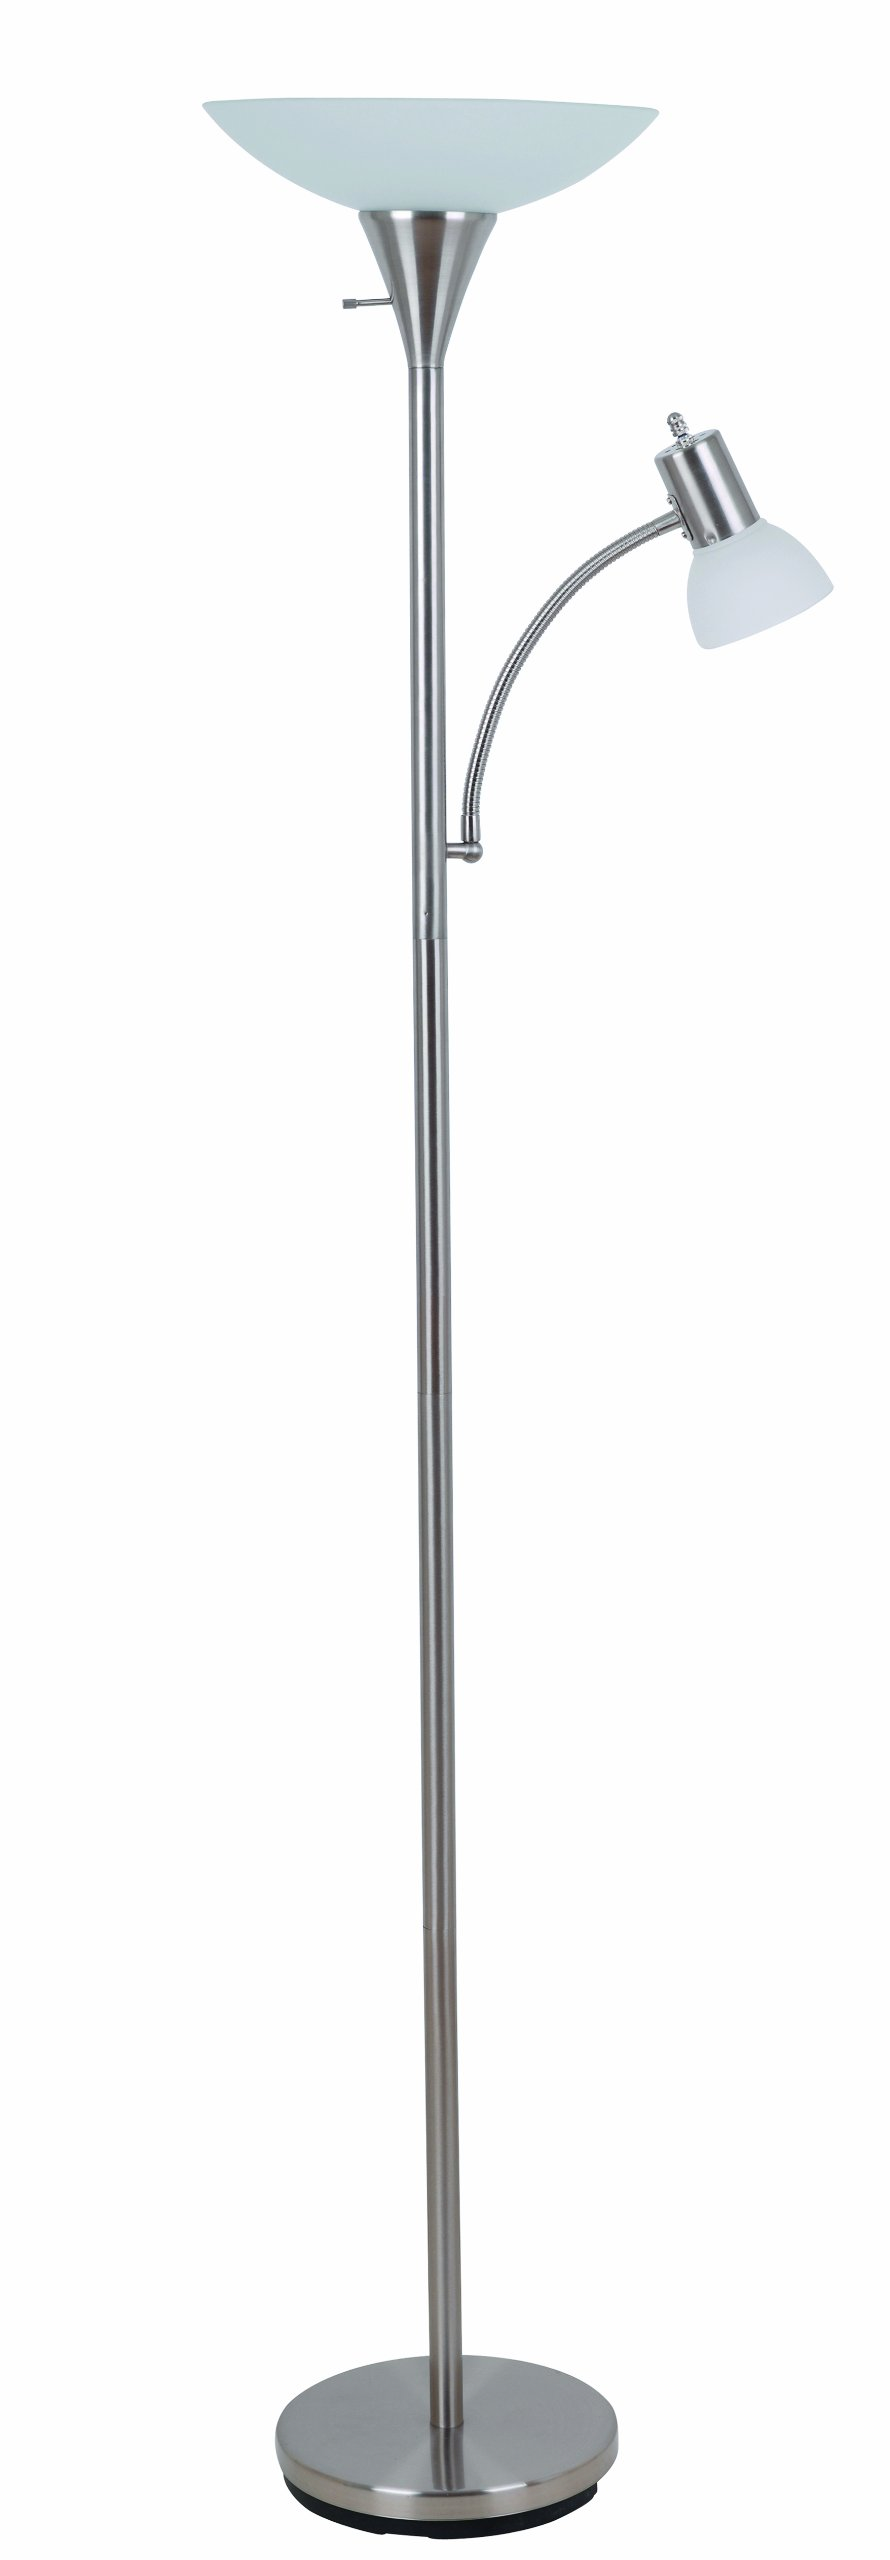 Catalina Lighting 17539-000 Contemporary Torchiere Floor Lamp with Adjustable Reading Light and Frosted Glass Shade, 71'', Brush Steel